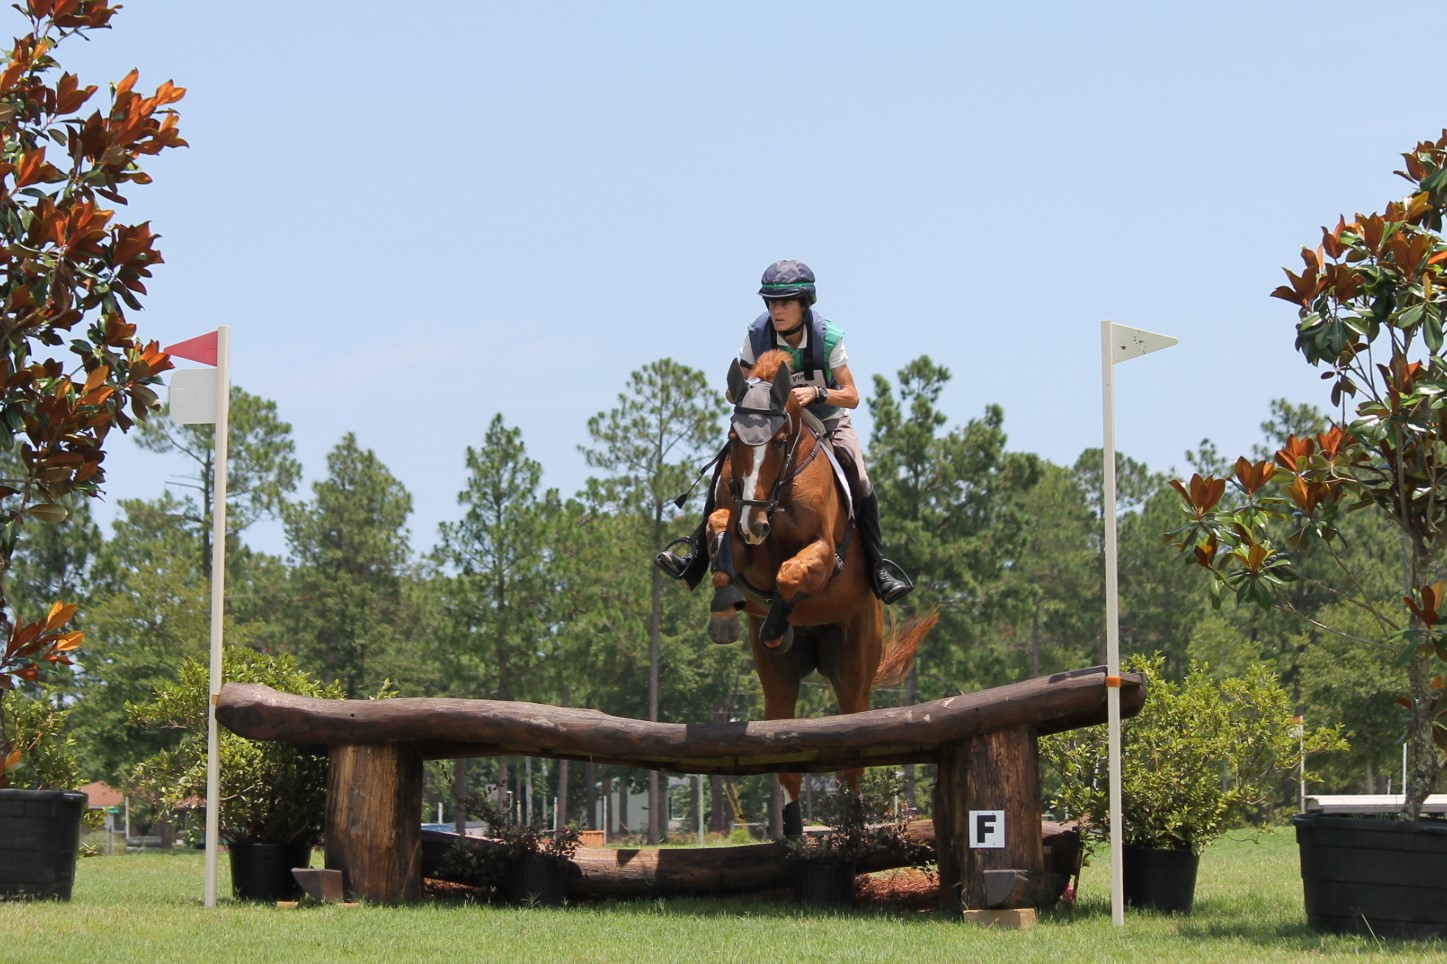 Stable View Eventing Academy